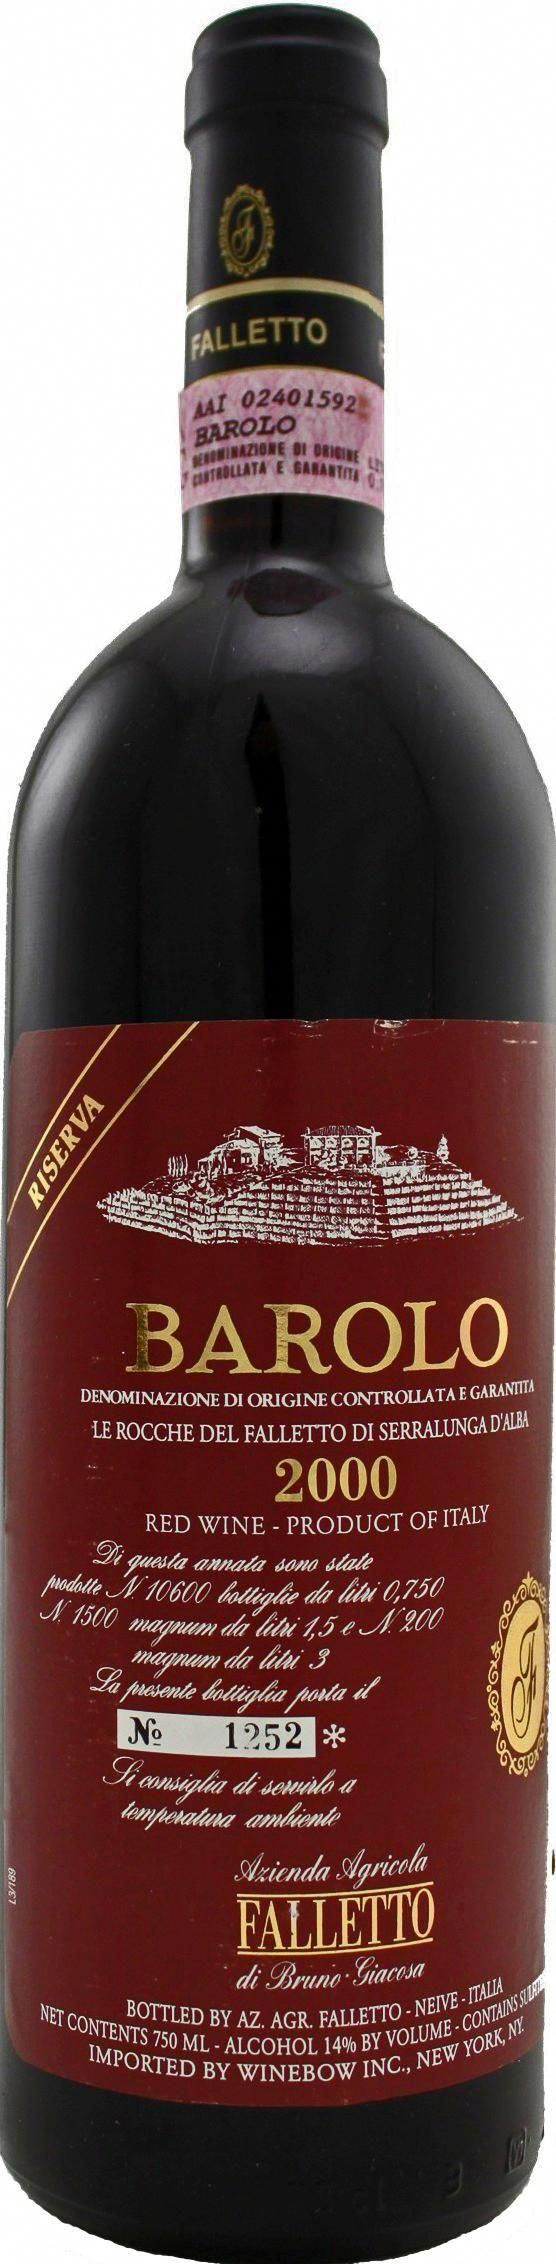 Shipping Wine To Canada Product Id 4276876598 Virginiawineries Wine Case Wine Discount Barolo Wine